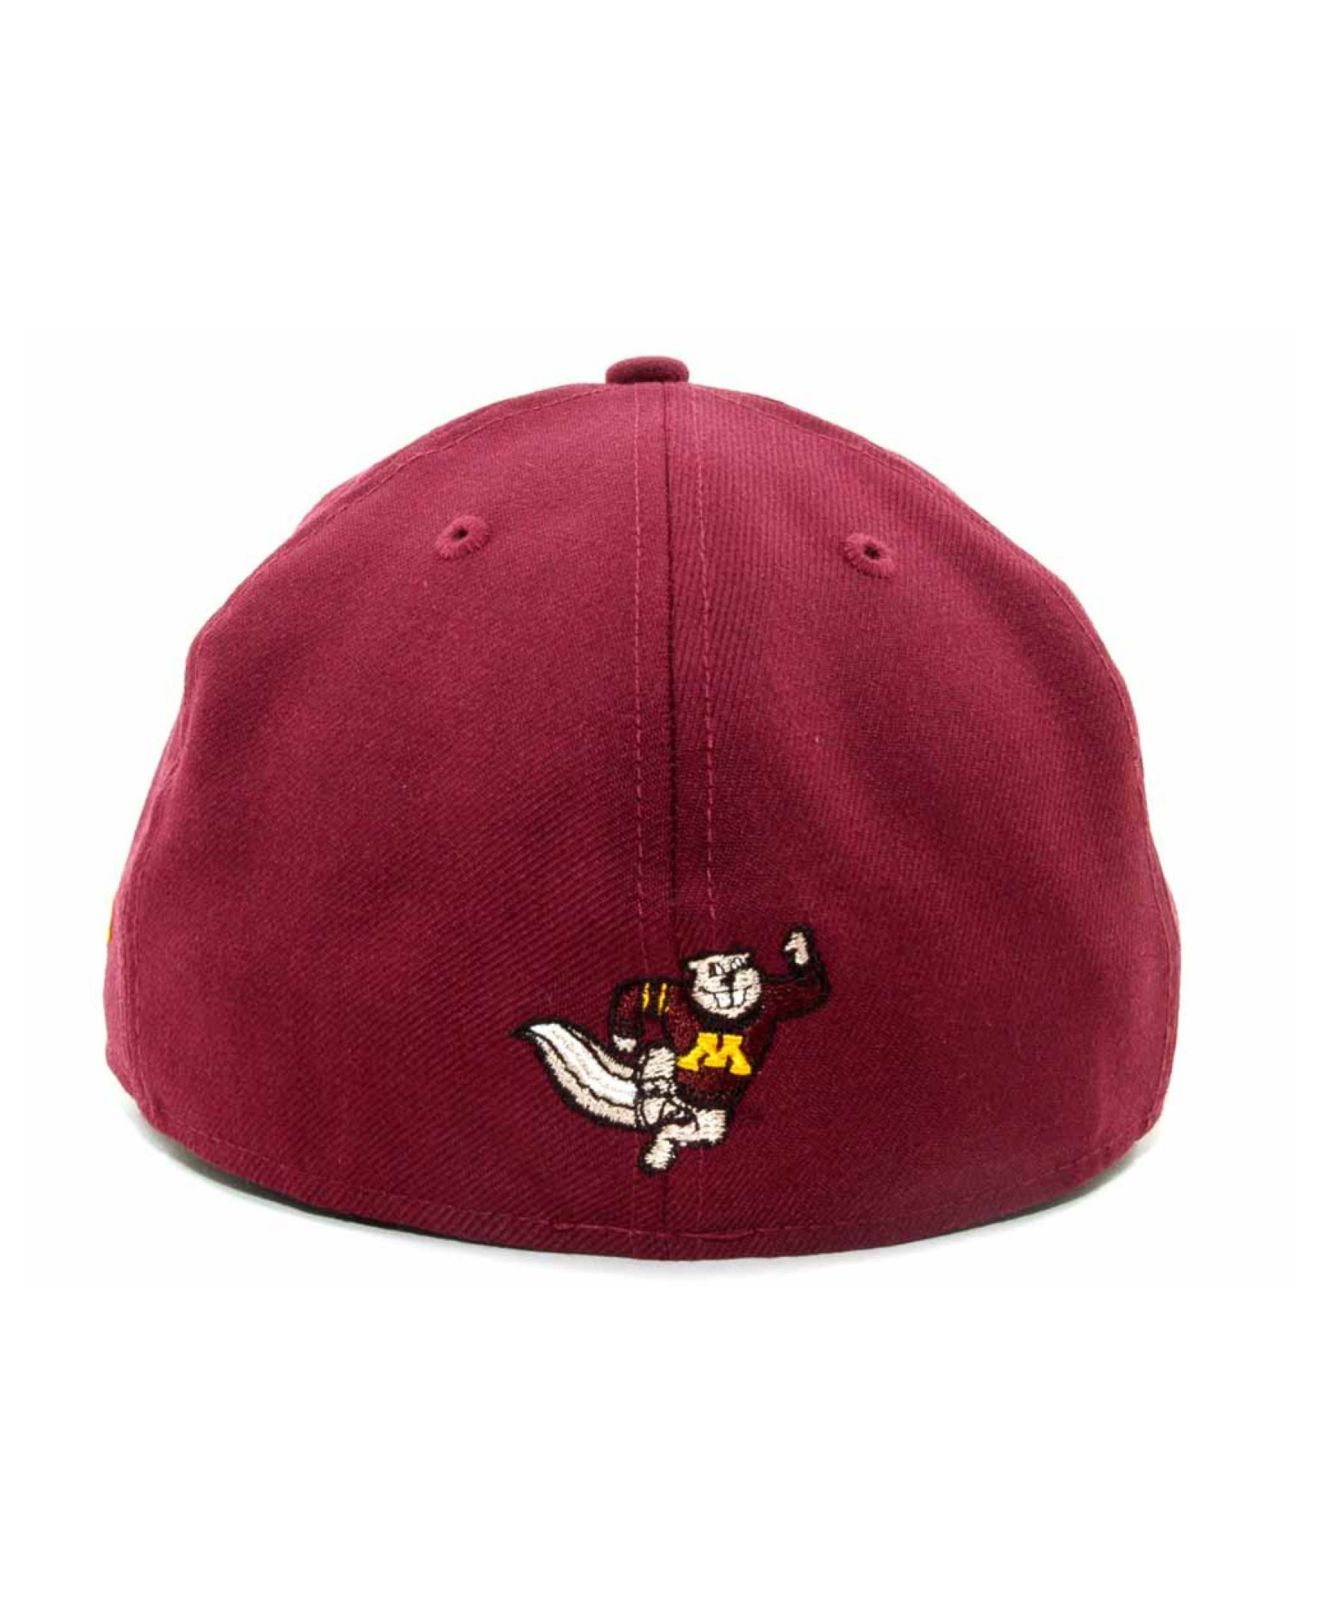 brand new 89b8d ee3d0 ... low cost lyst ktz minnesota golden gophers 2 tone 59fifty cap in red  for men 1c85e